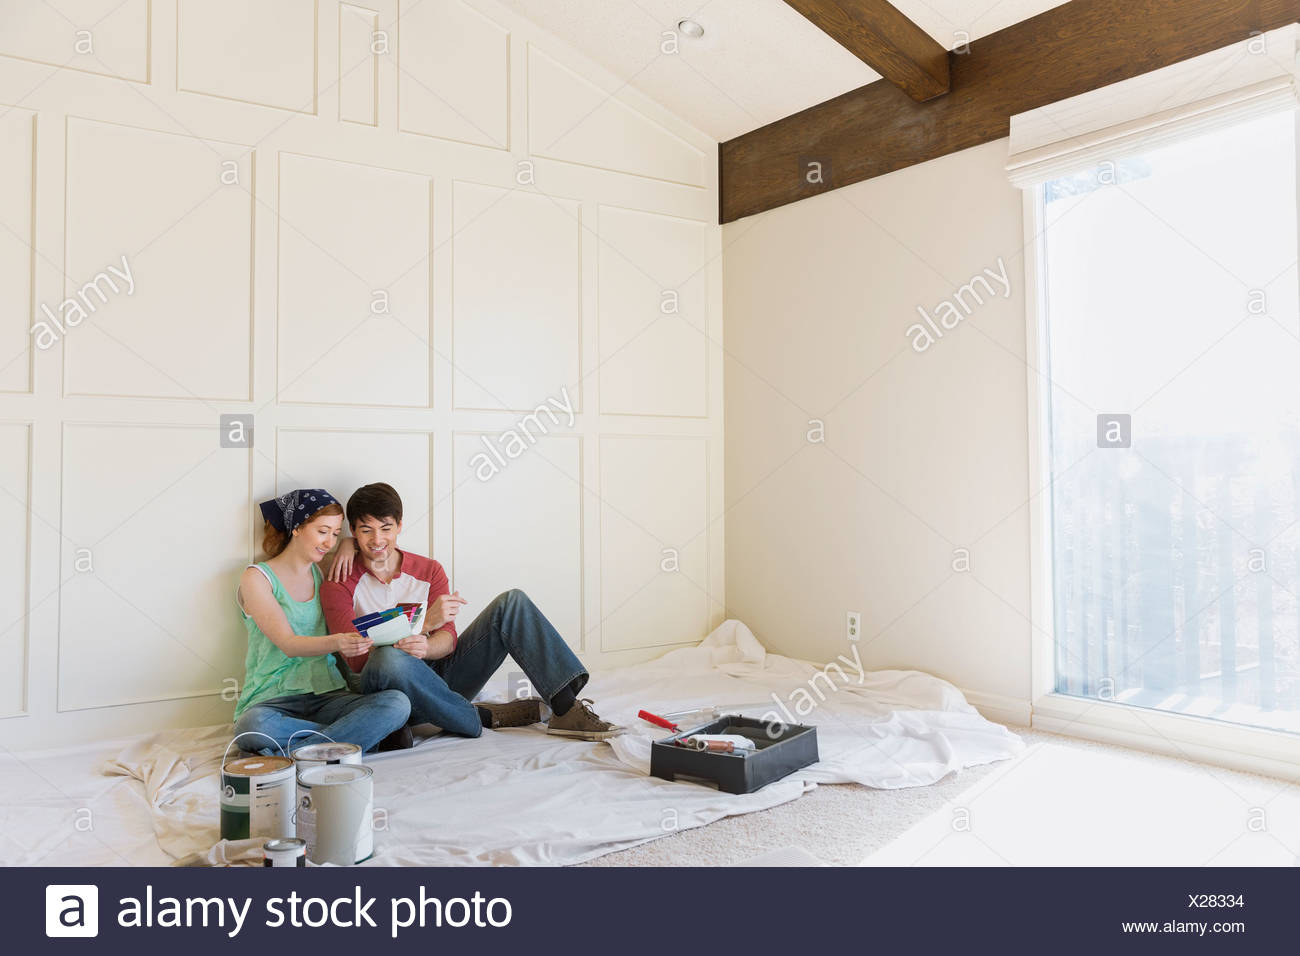 Young couple at home Photo Stock